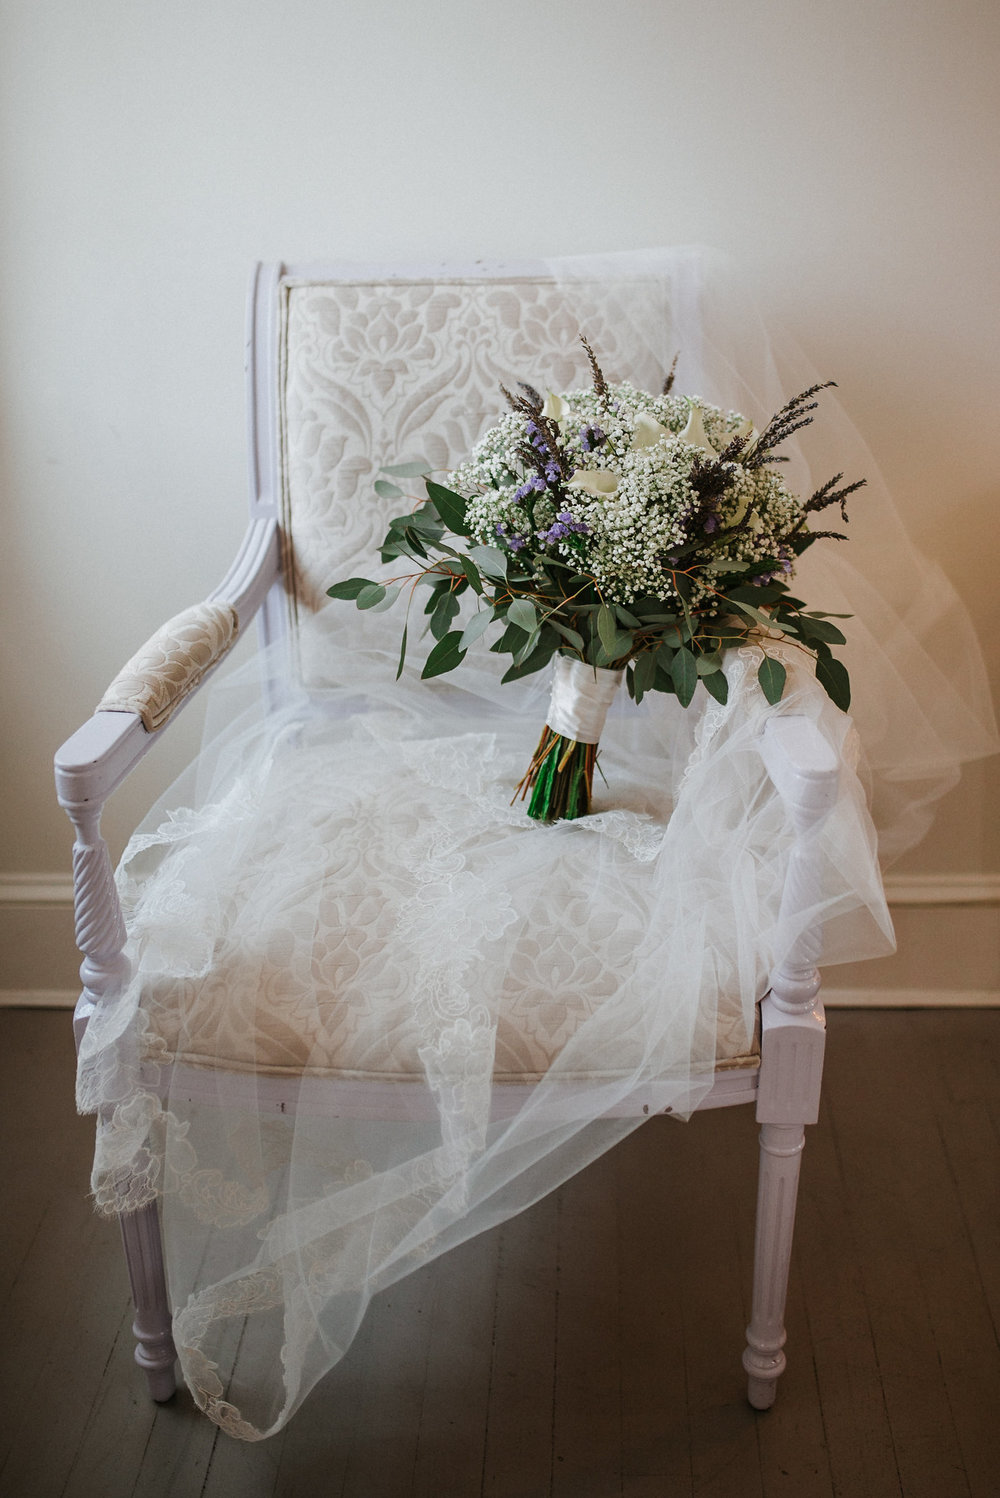 Bride's wedding bouquet on chair with veil